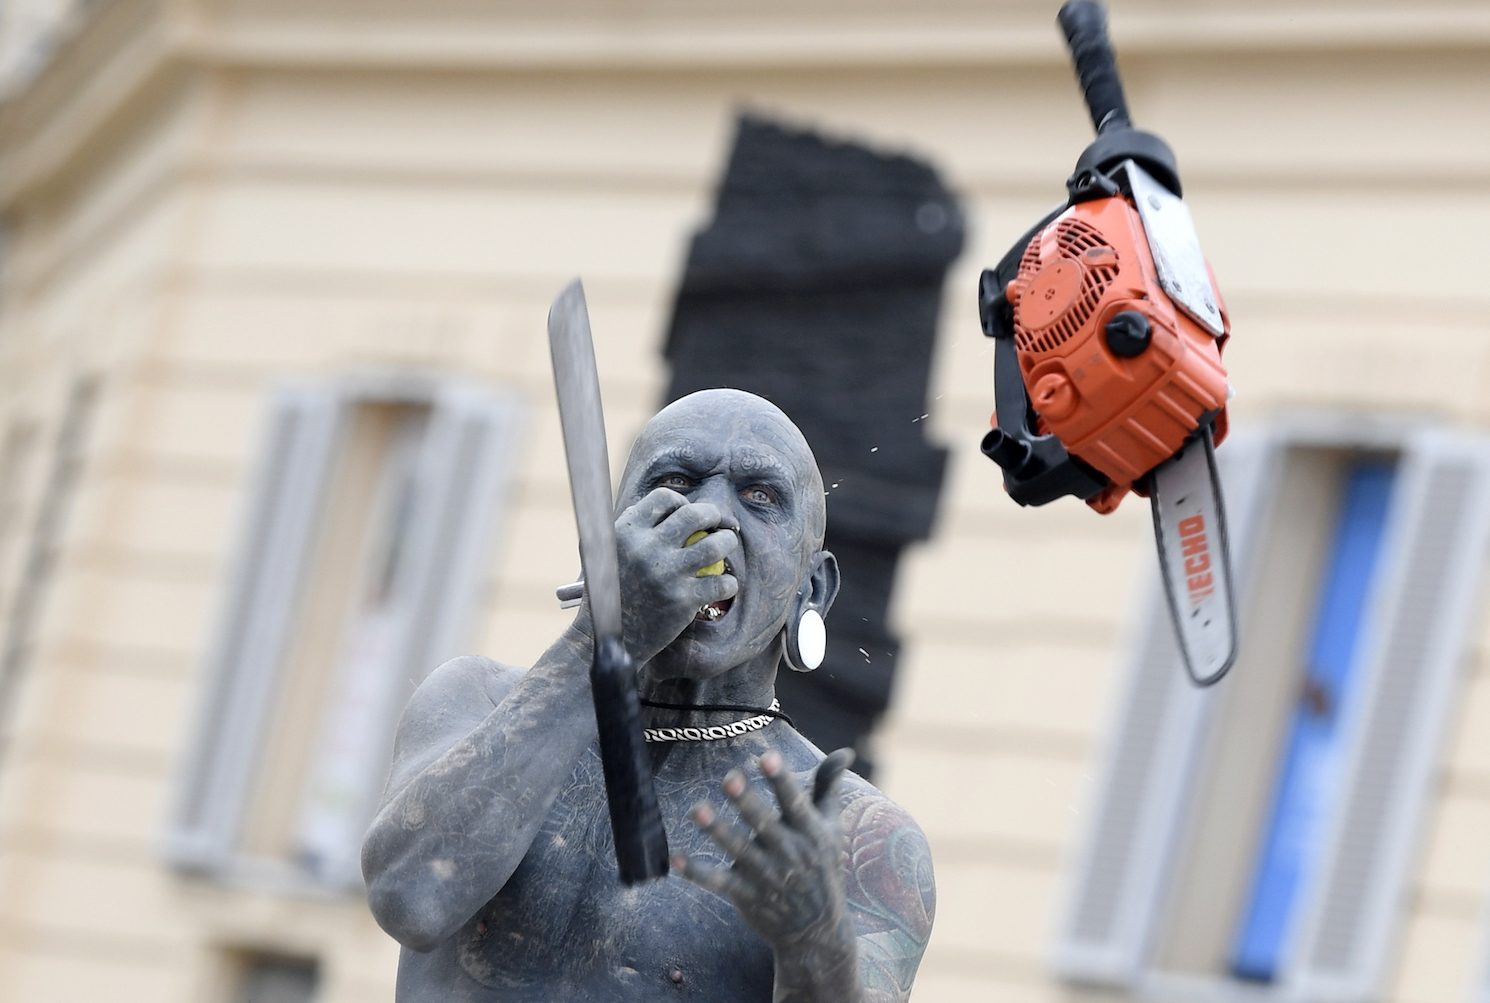 The worlds most tattooed man, Gregory Paul Mclaren, performs as Lucky Diamond Rich during a photo session on March 14 in Vienna, Austria. / AFP PHOTO / APA / HANS KLAUS TECHT / Austria OUT        (Photo credit should read HANS KLAUS TECHT/AFP/Getty Images)